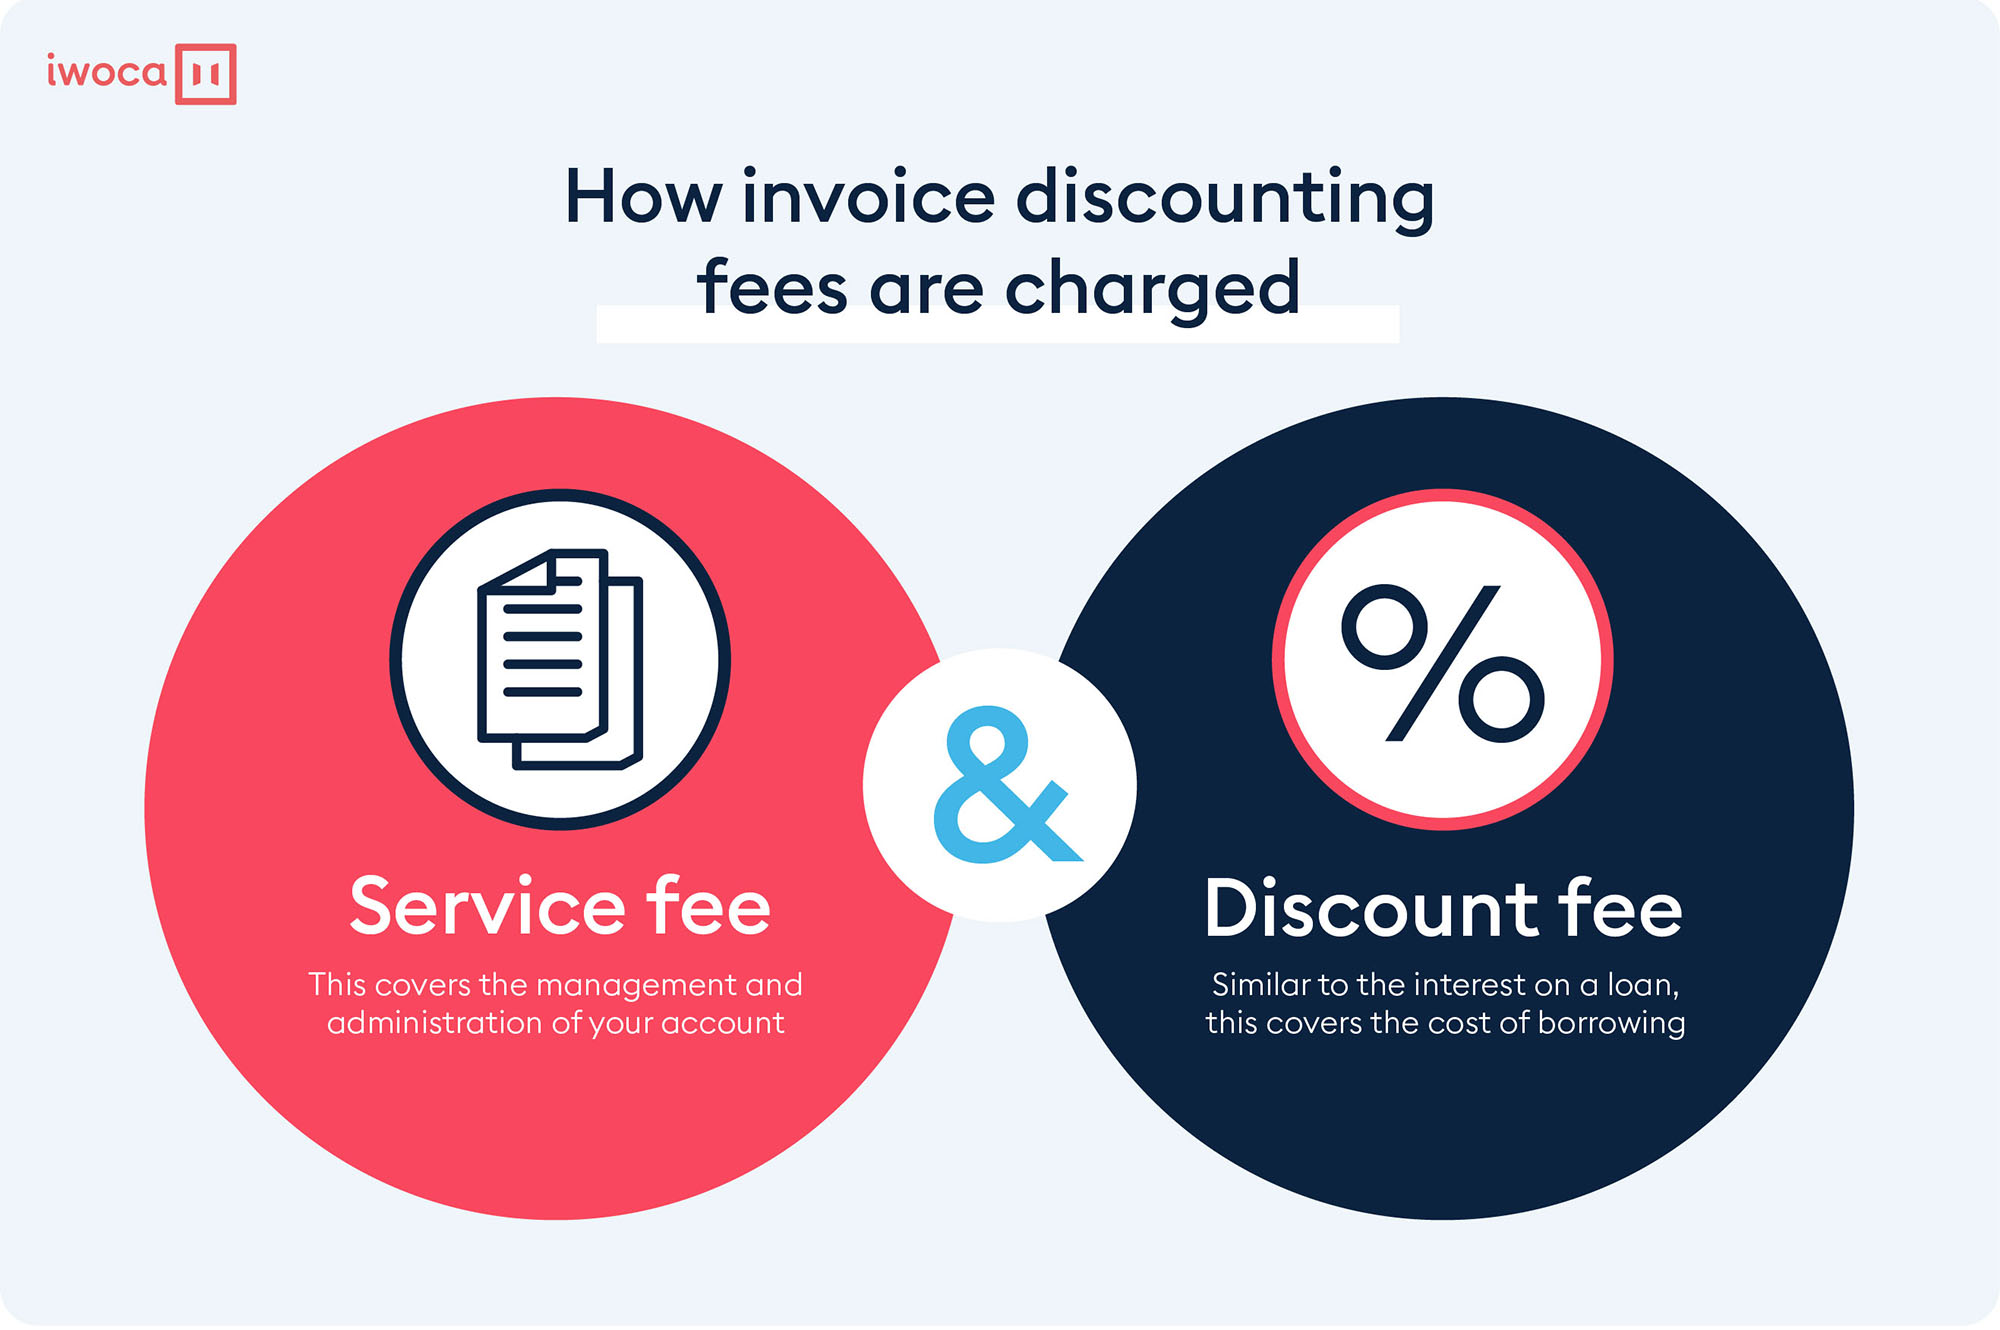 How invoice discounting fees are charged